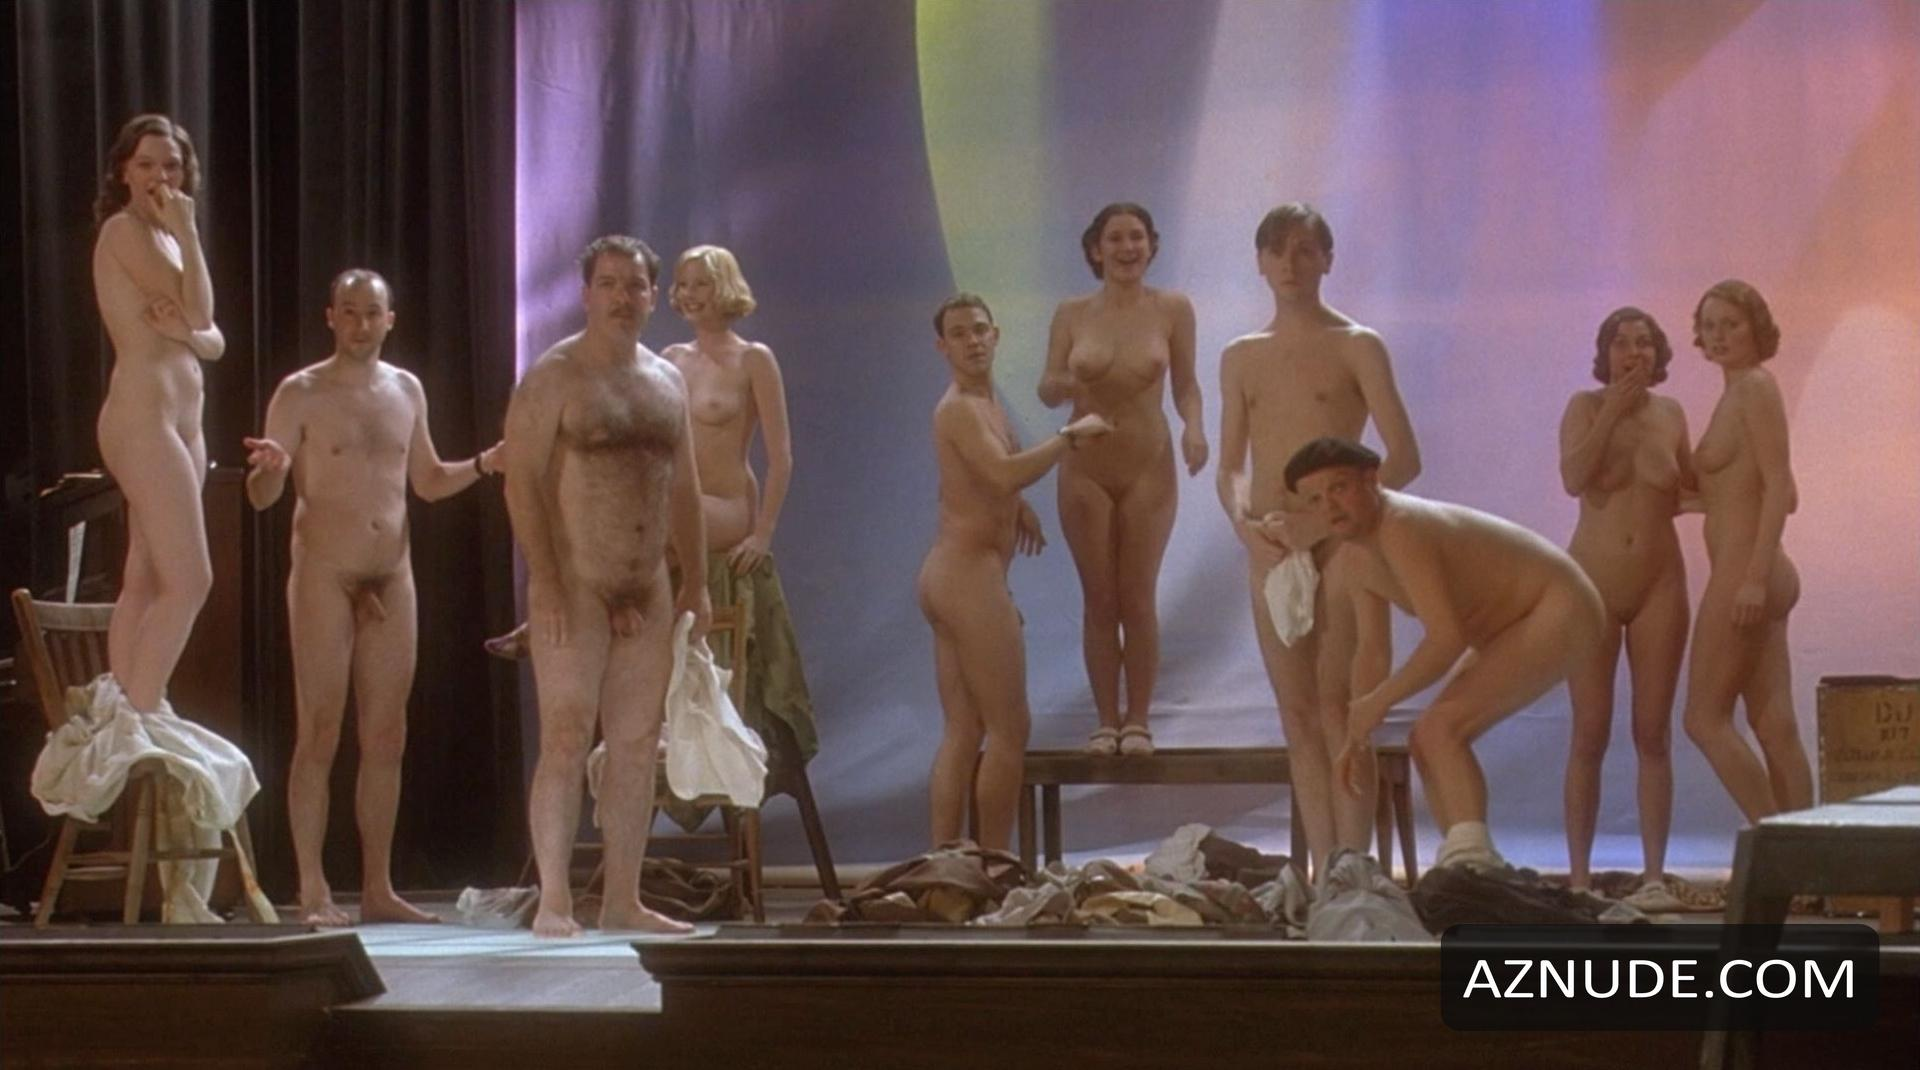 Kate winslet nude - 1 part 4